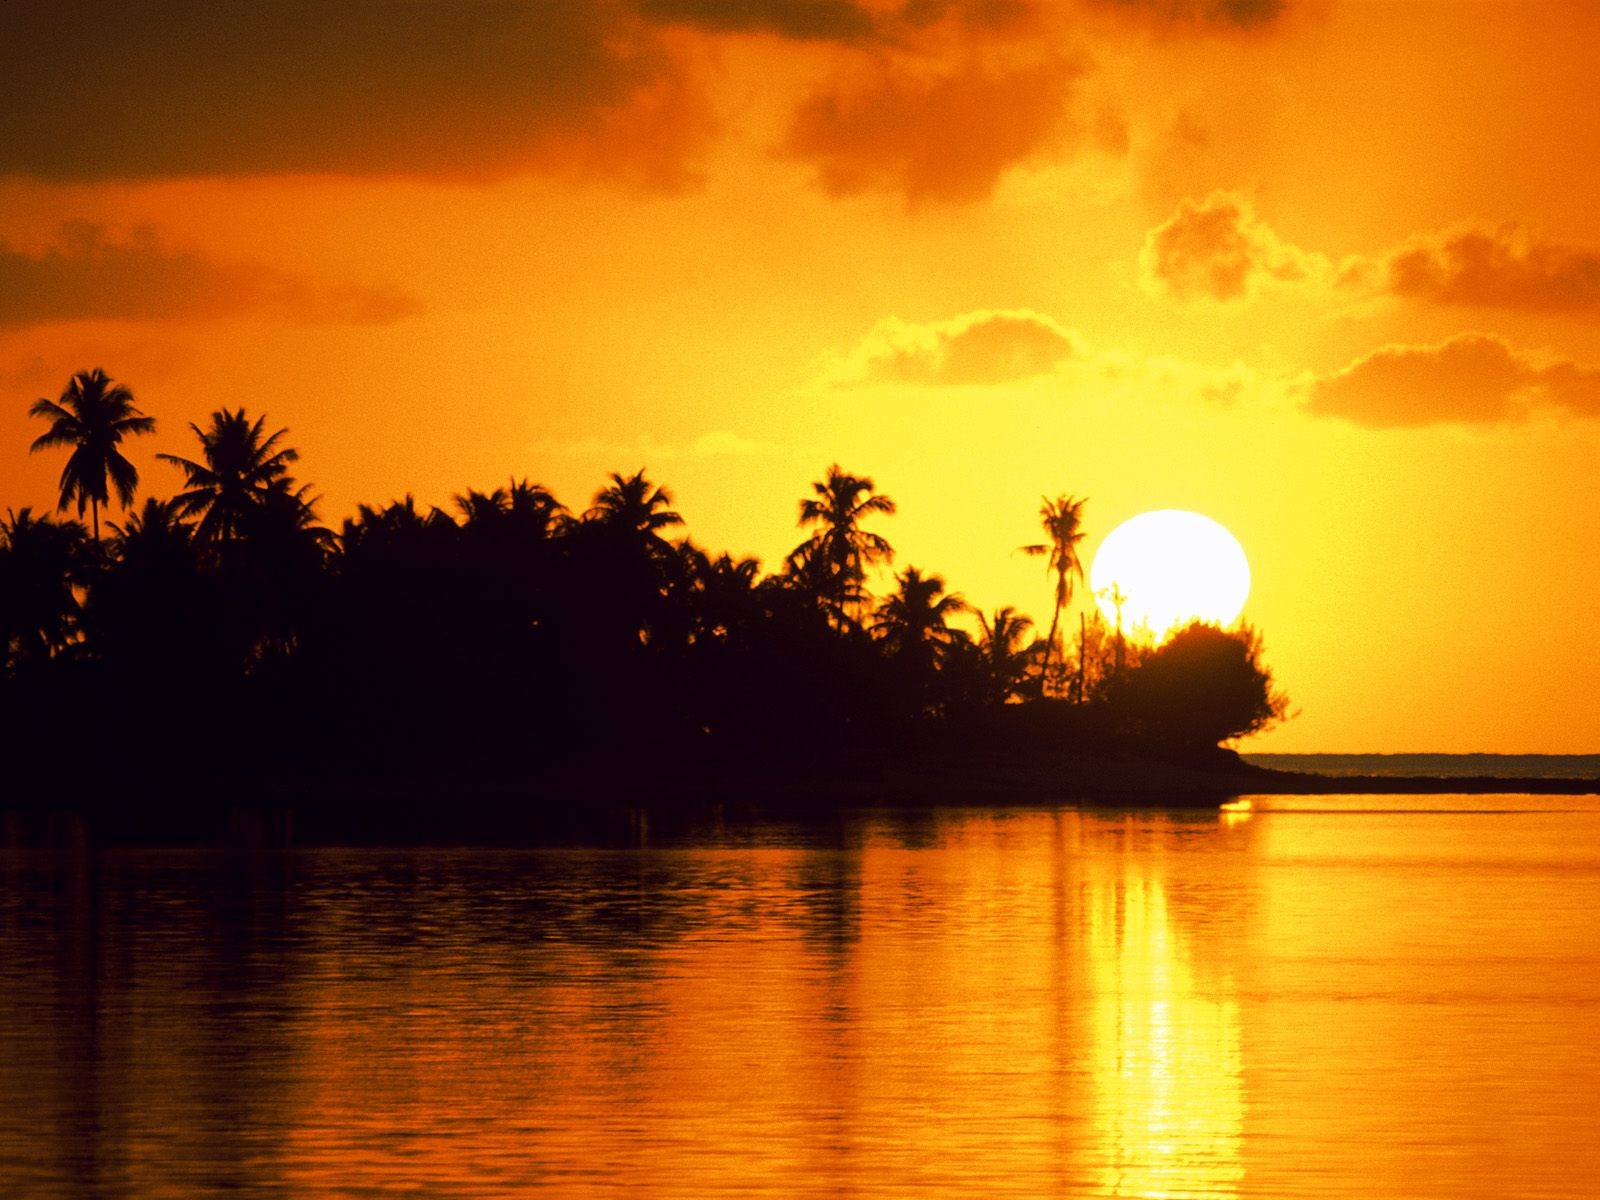 Free Landscape Wallpaper: Island sunrise scenery